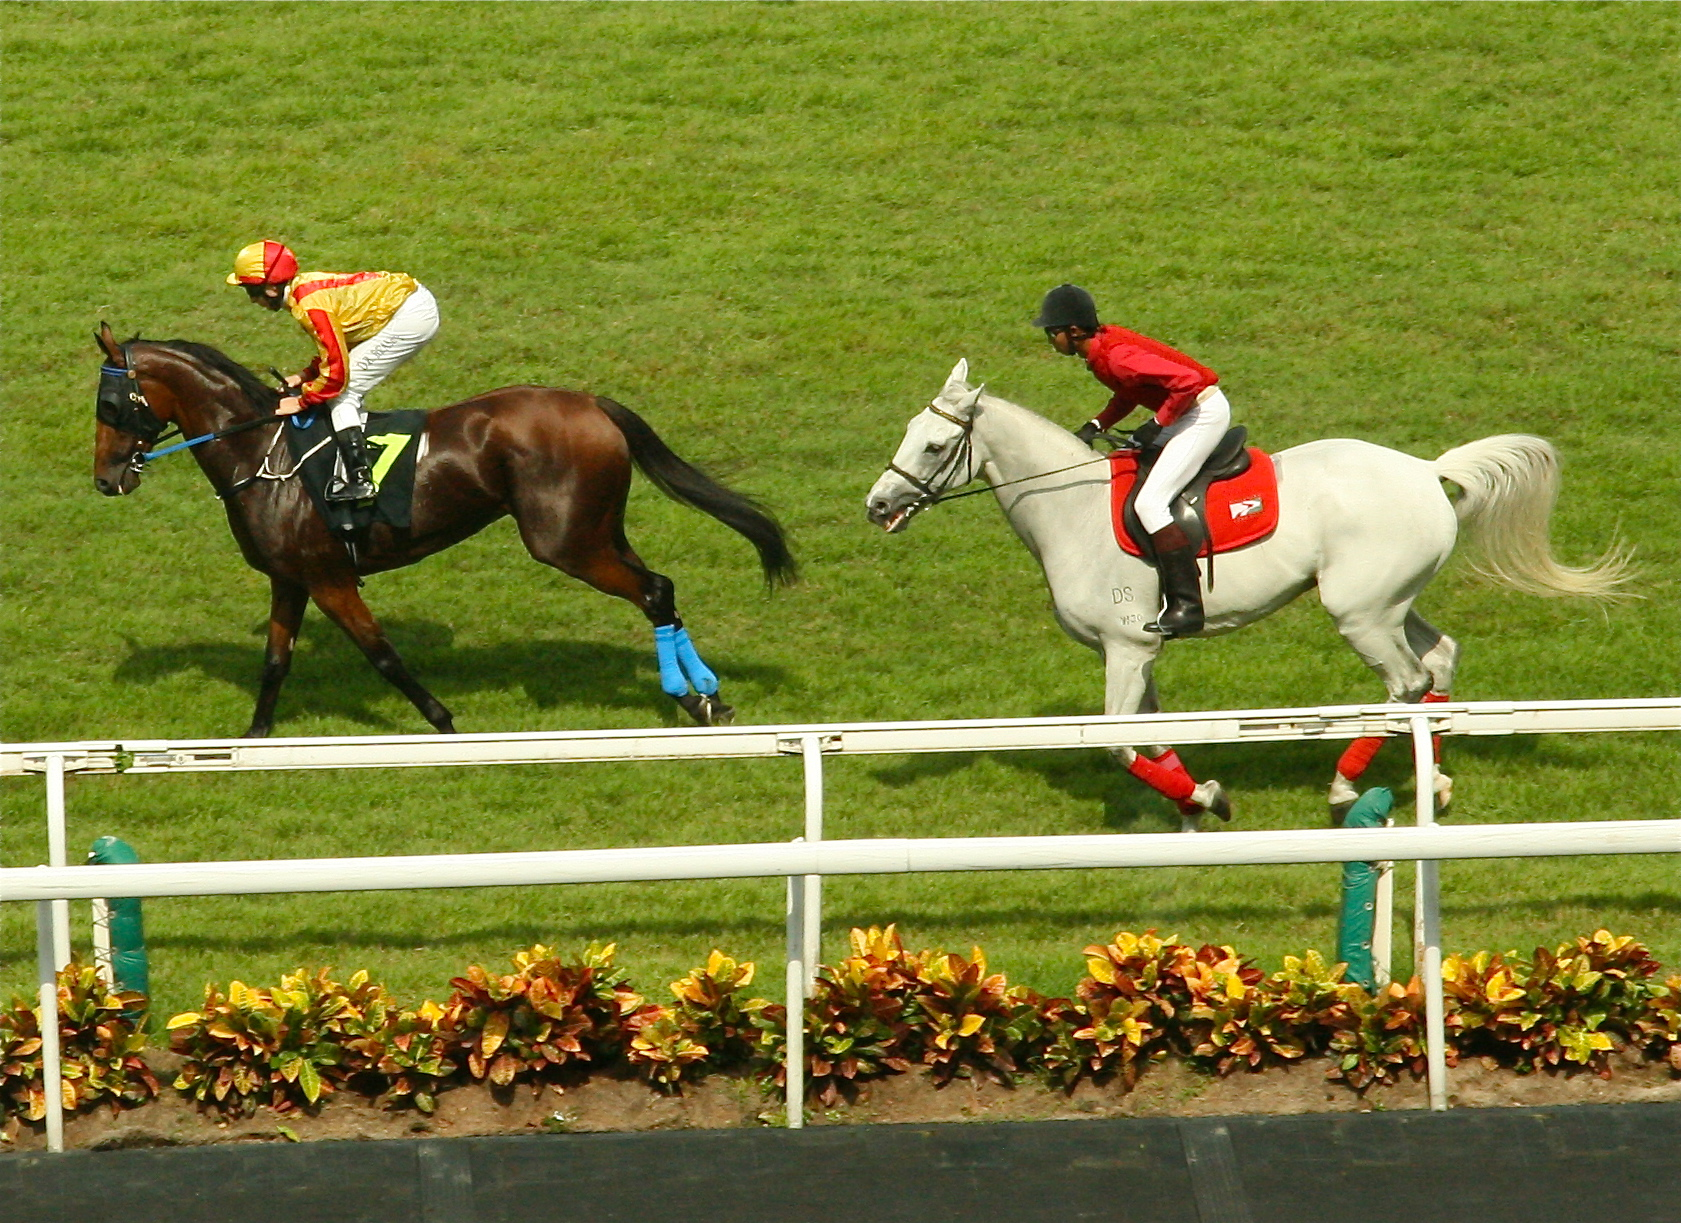 A Fine Day of Horse Racing at the Singapore Turf Club